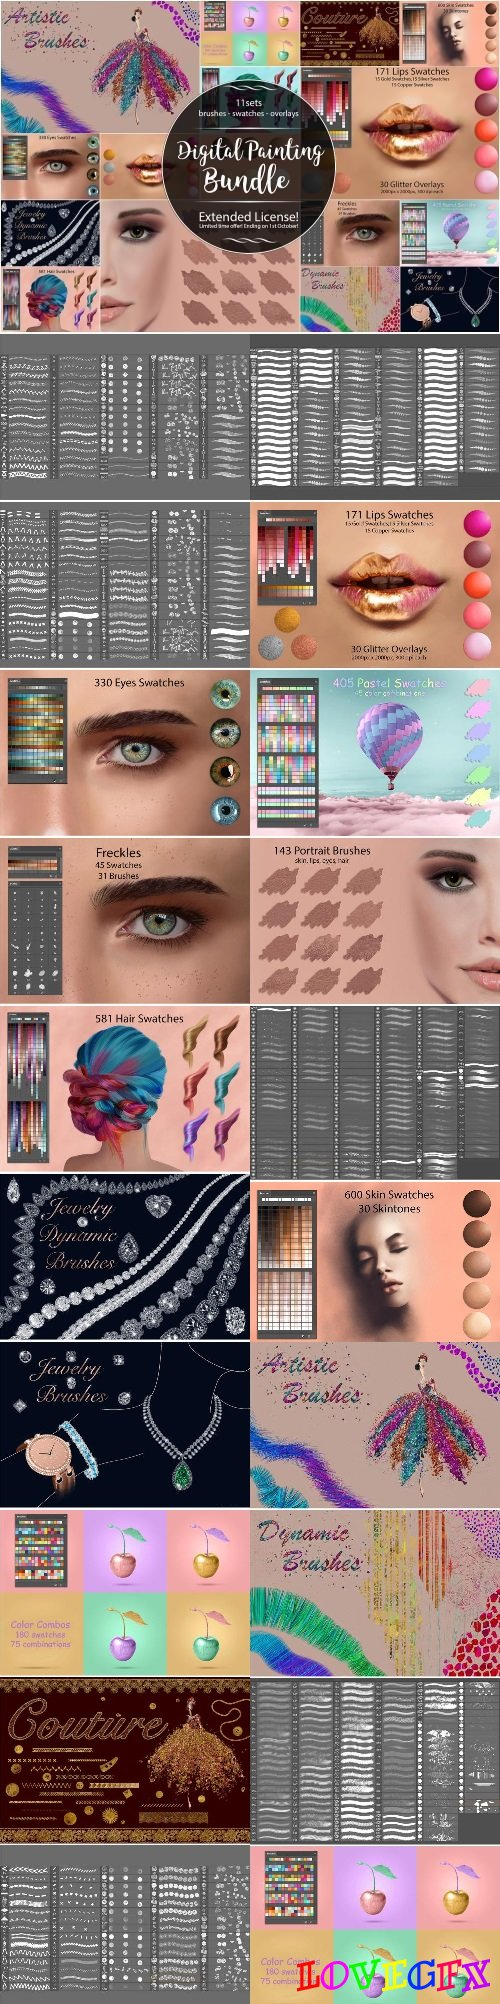 DigitalPainting Assets for Creatives 1792082